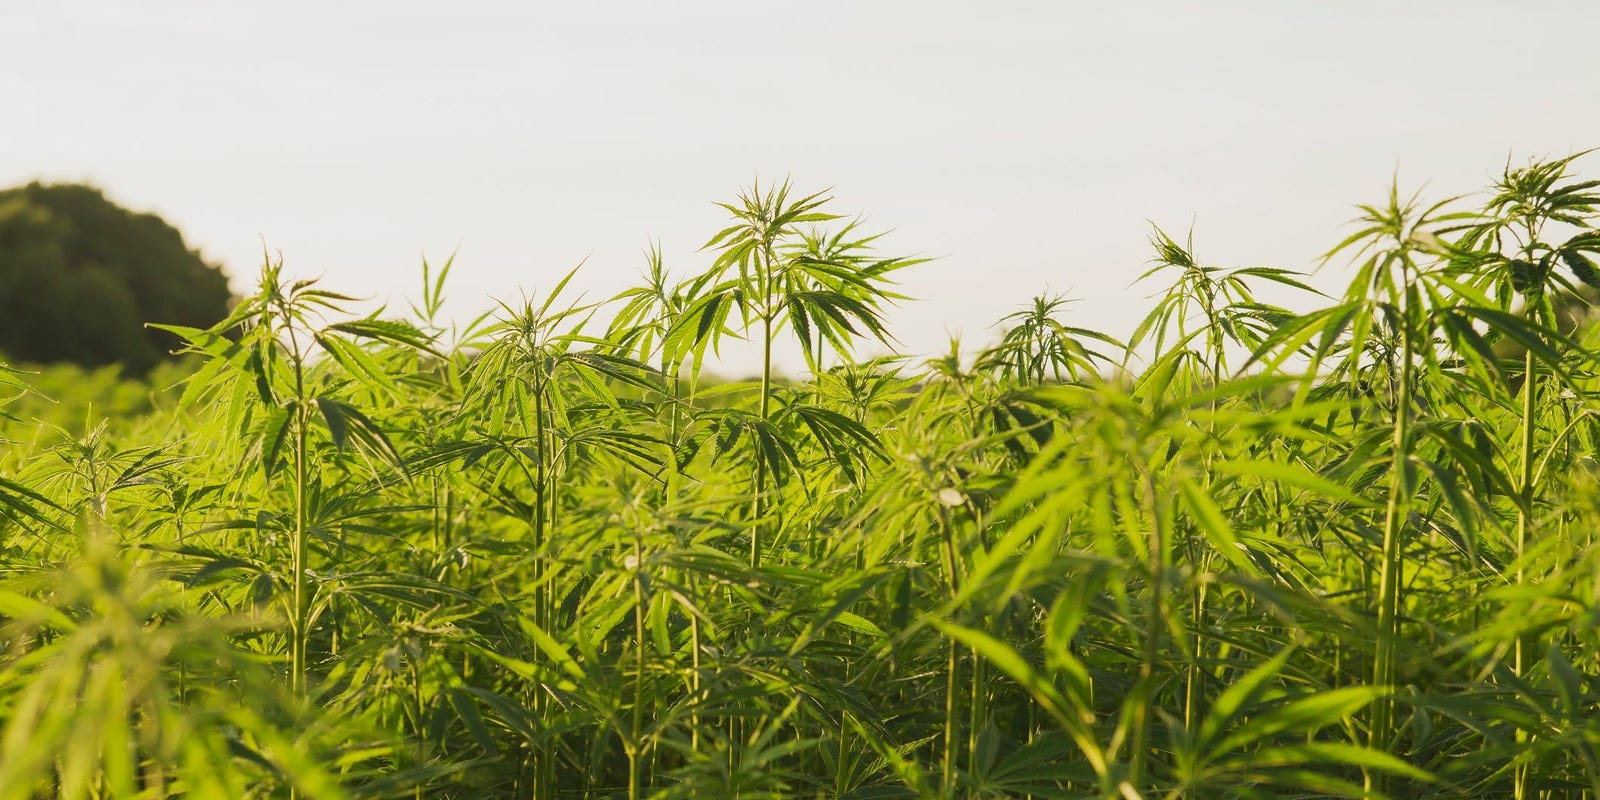 Rideout: Hemp producers encounter growing pains, uncertainty - The Gleaner